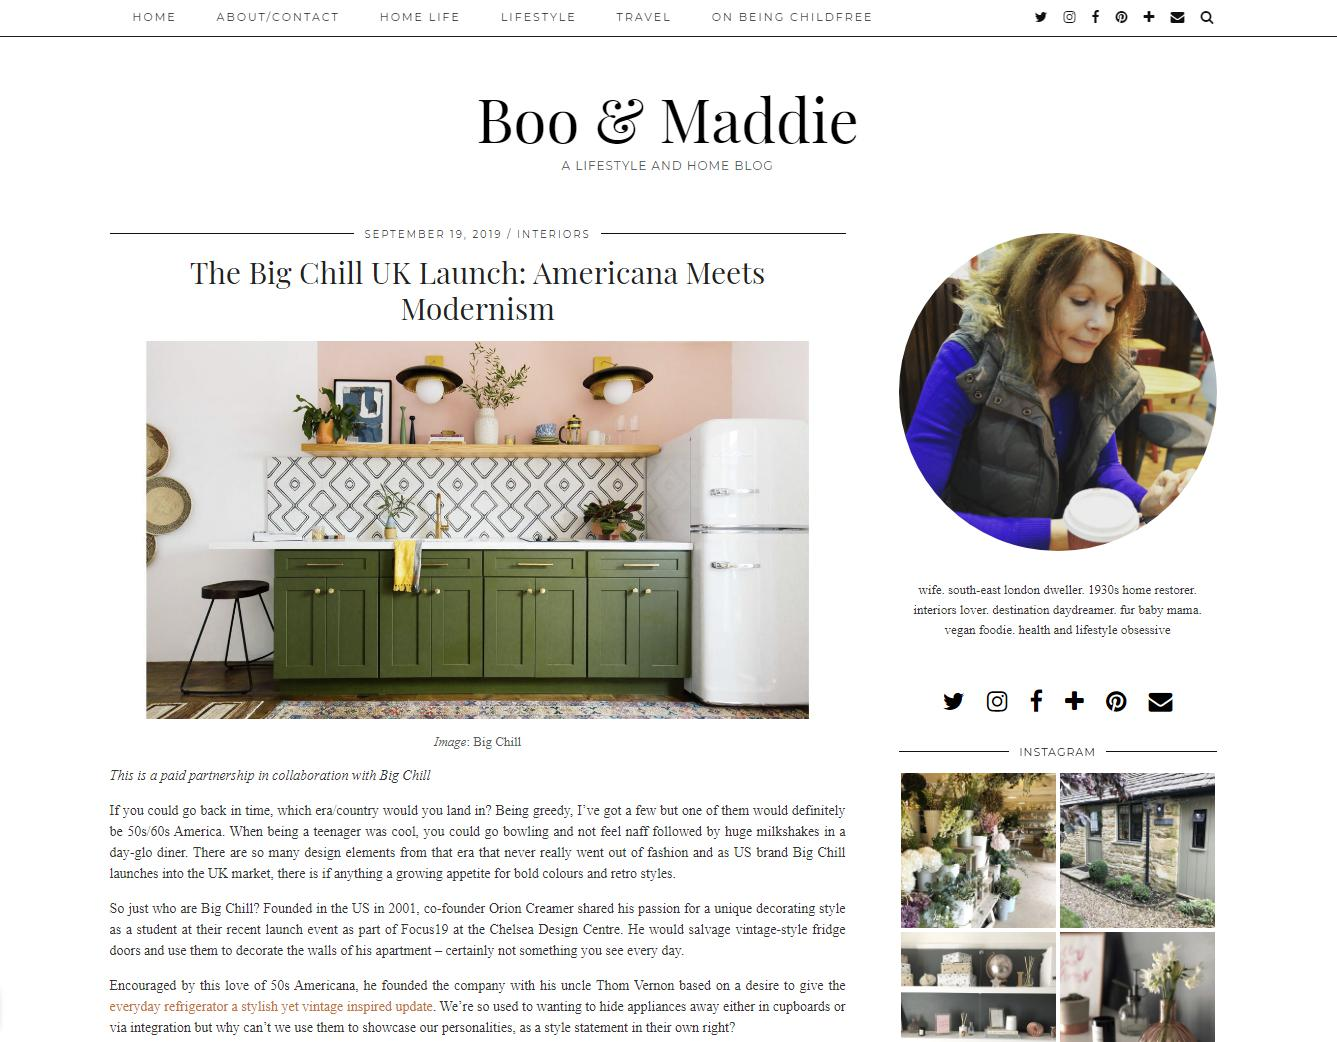 Boo & Maddie Blog – September 19th, 2019